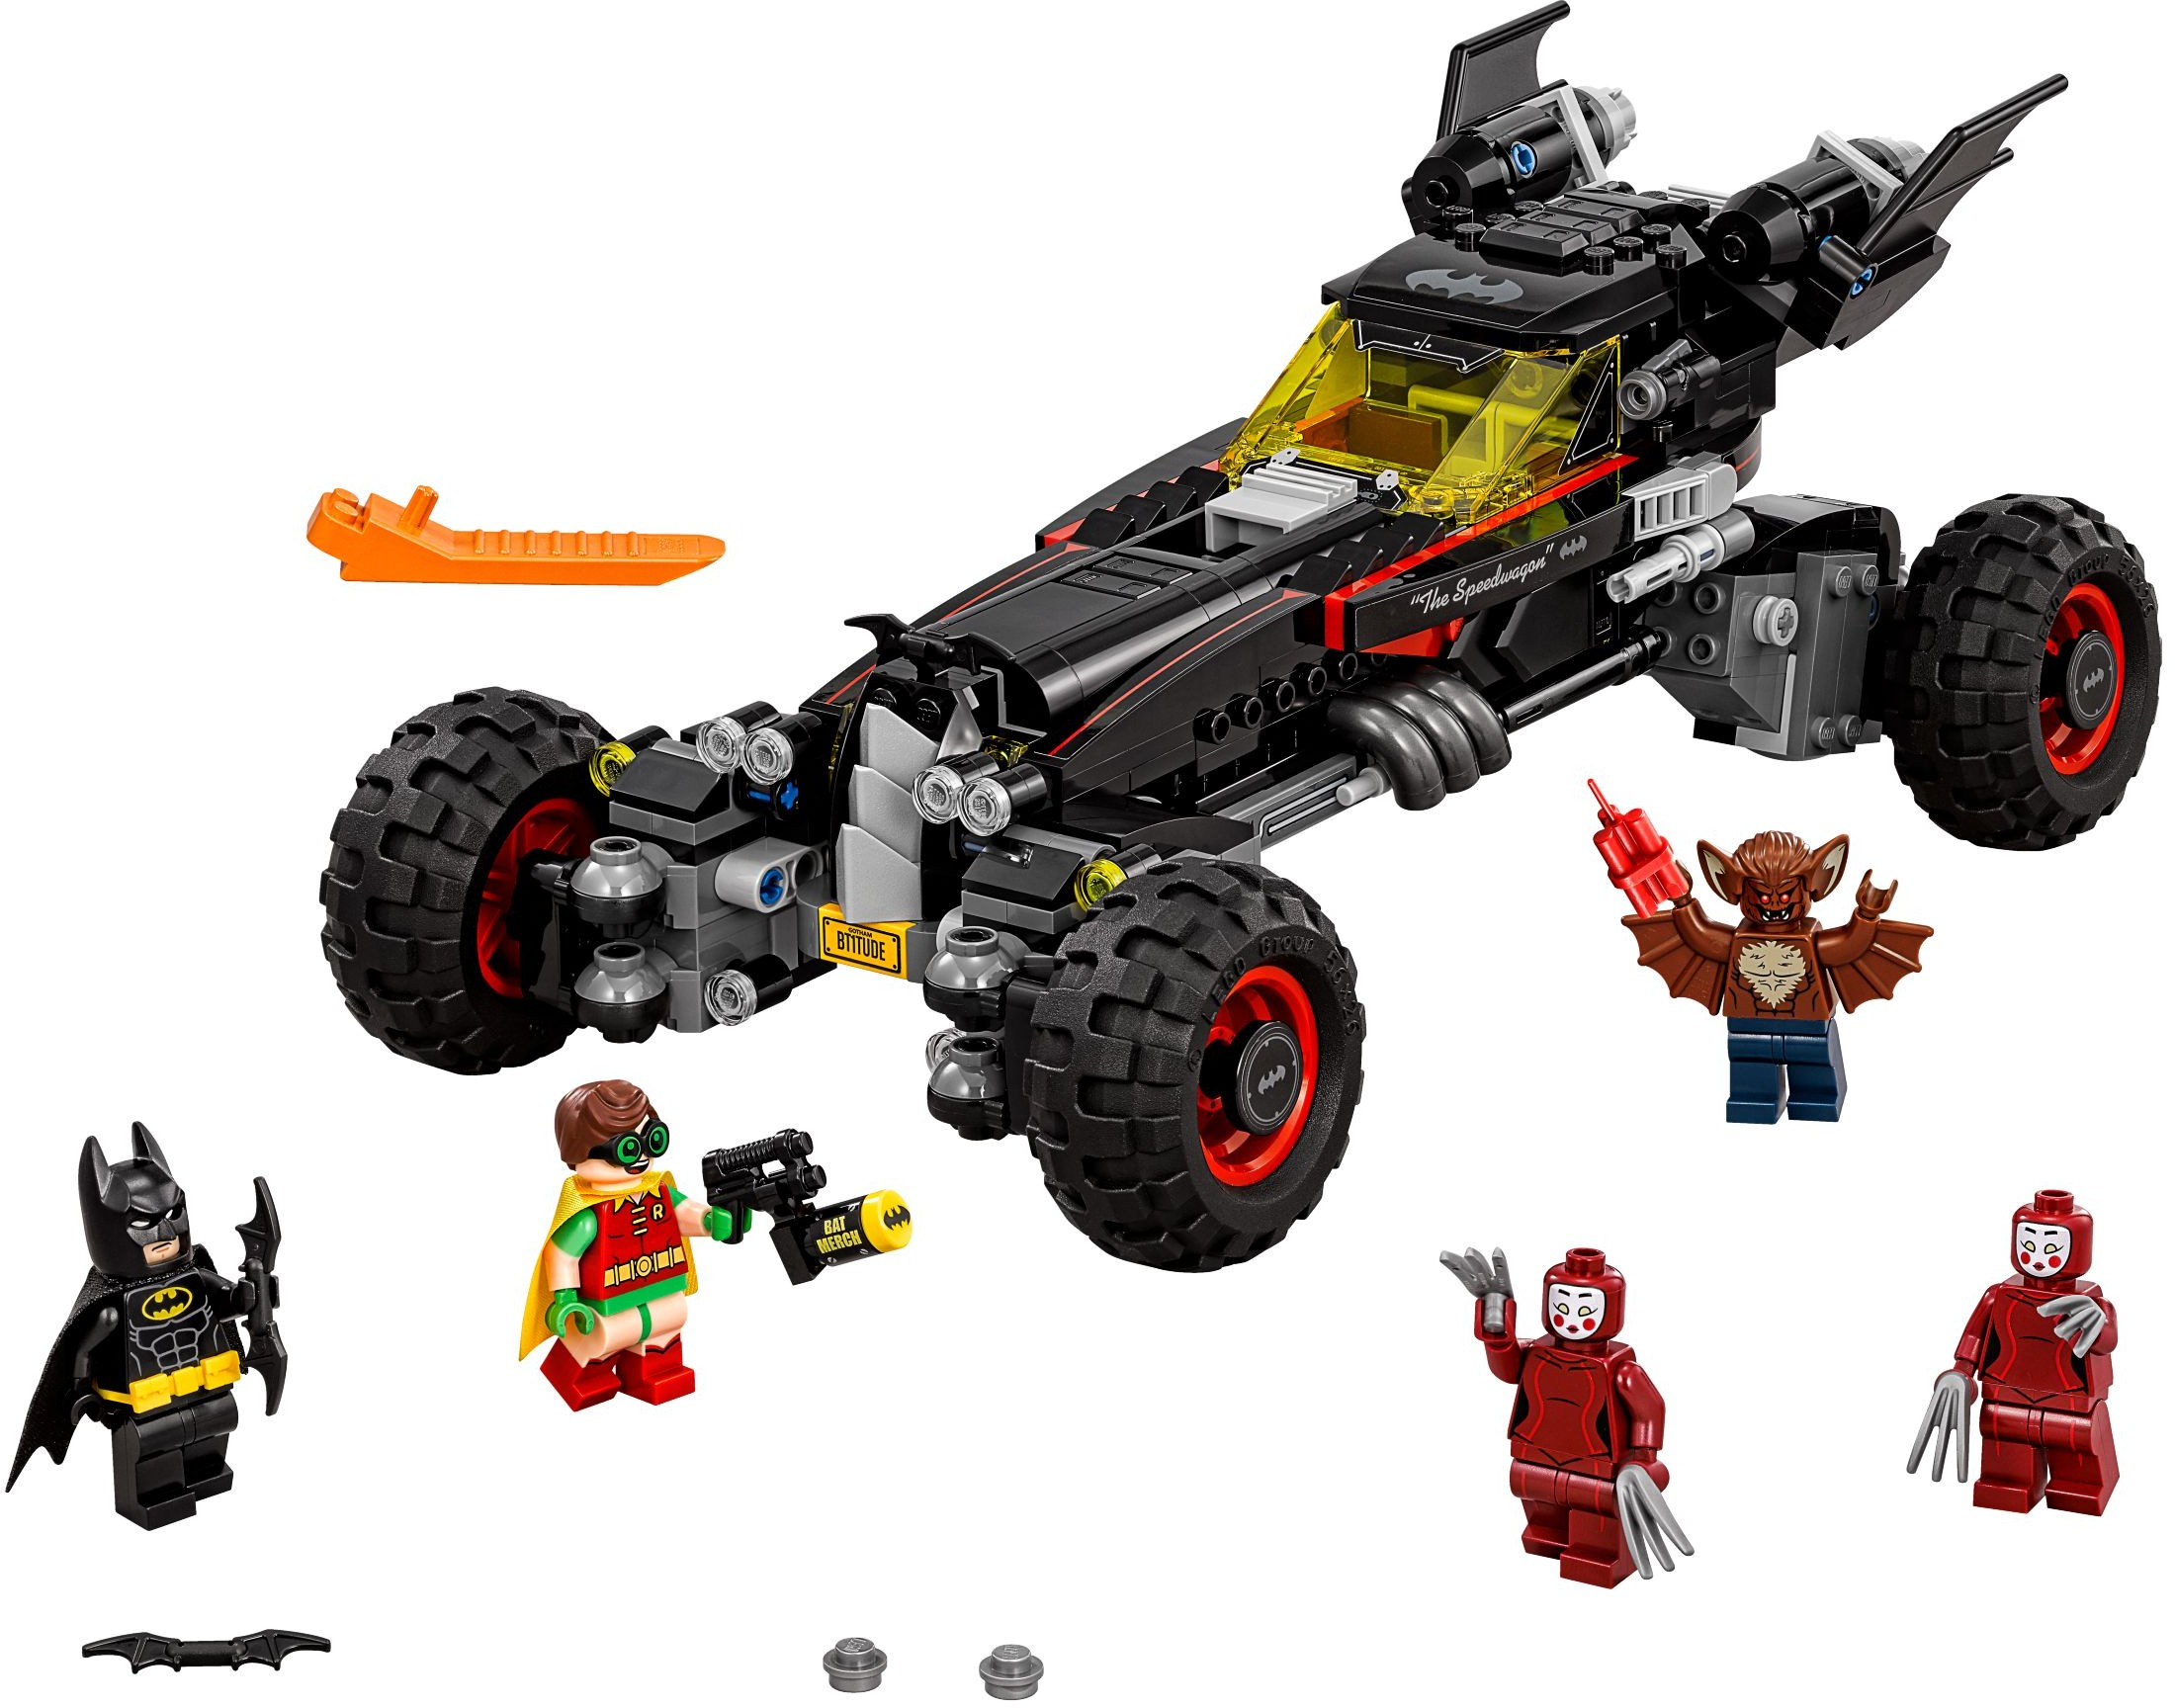 Mua đồ chơi LEGO 70905 - LEGO Batman Movie 70905 - Siêu Xe Batmobile (LEGO Batman Movie The Batmobile 70905)